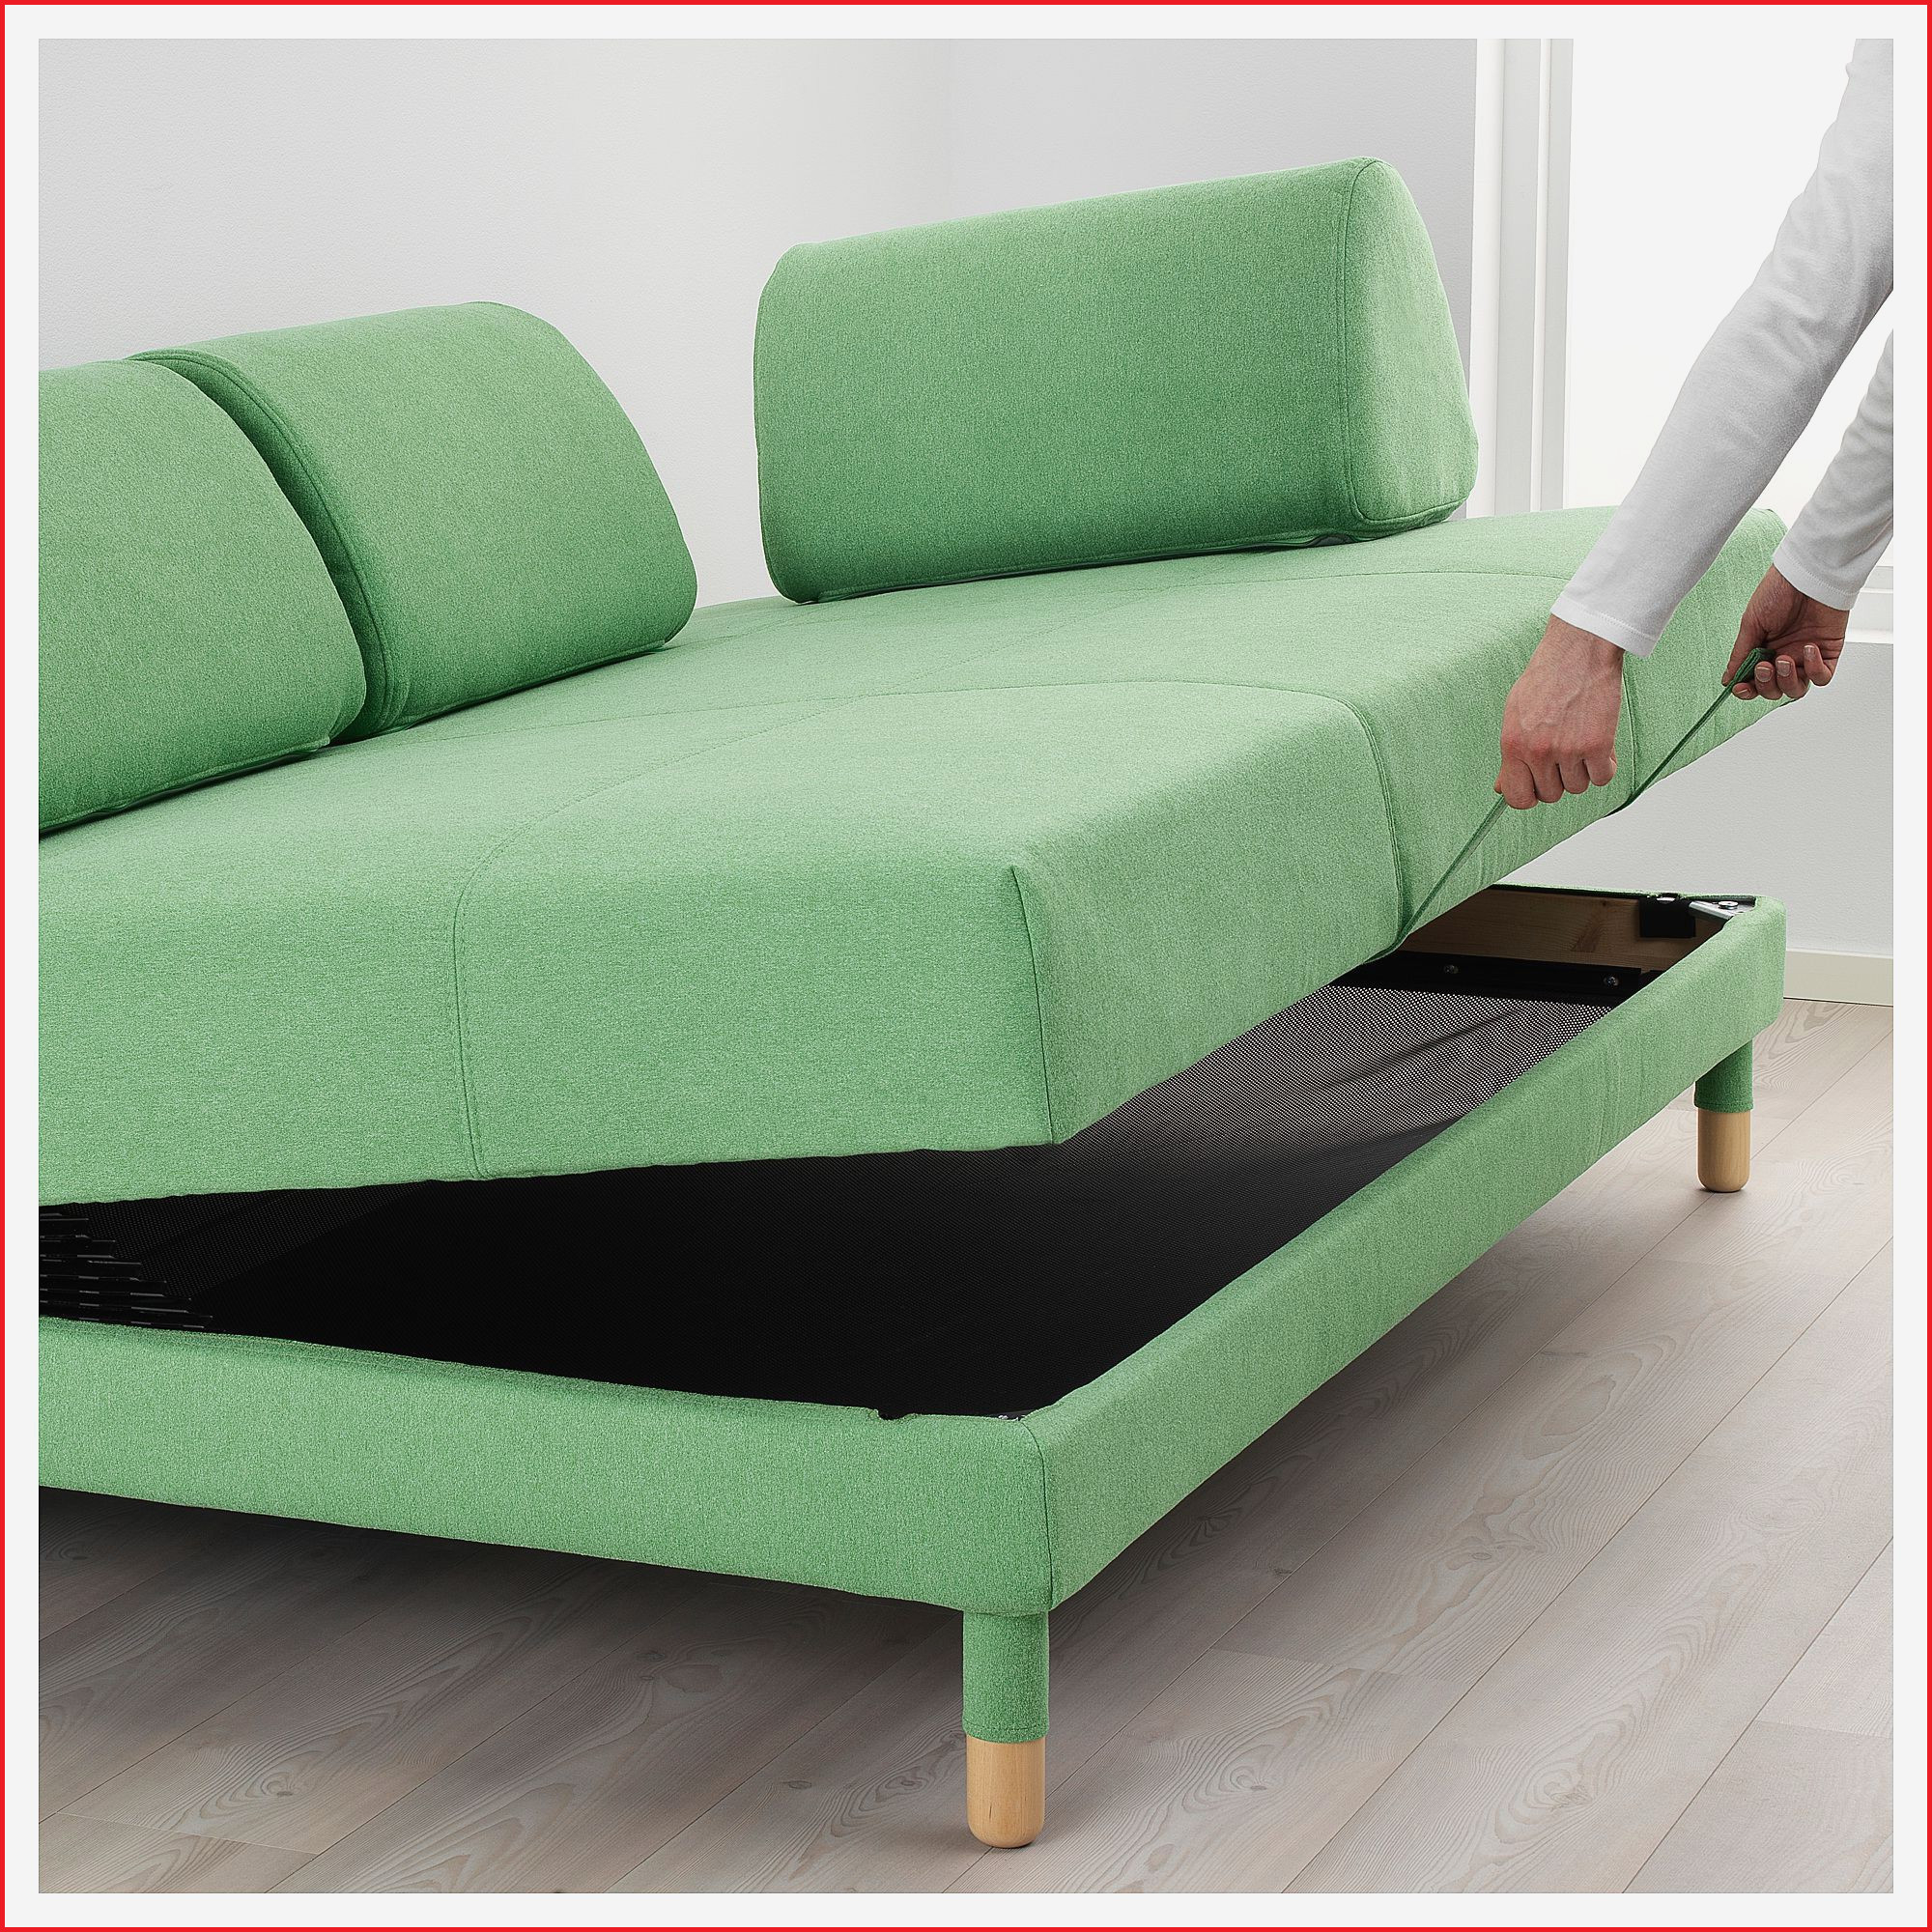 Sofa Cama Desplegable U3dh sofa Cama 1 Plaza Ikea sofa Cama Desplegable Conforama sofas